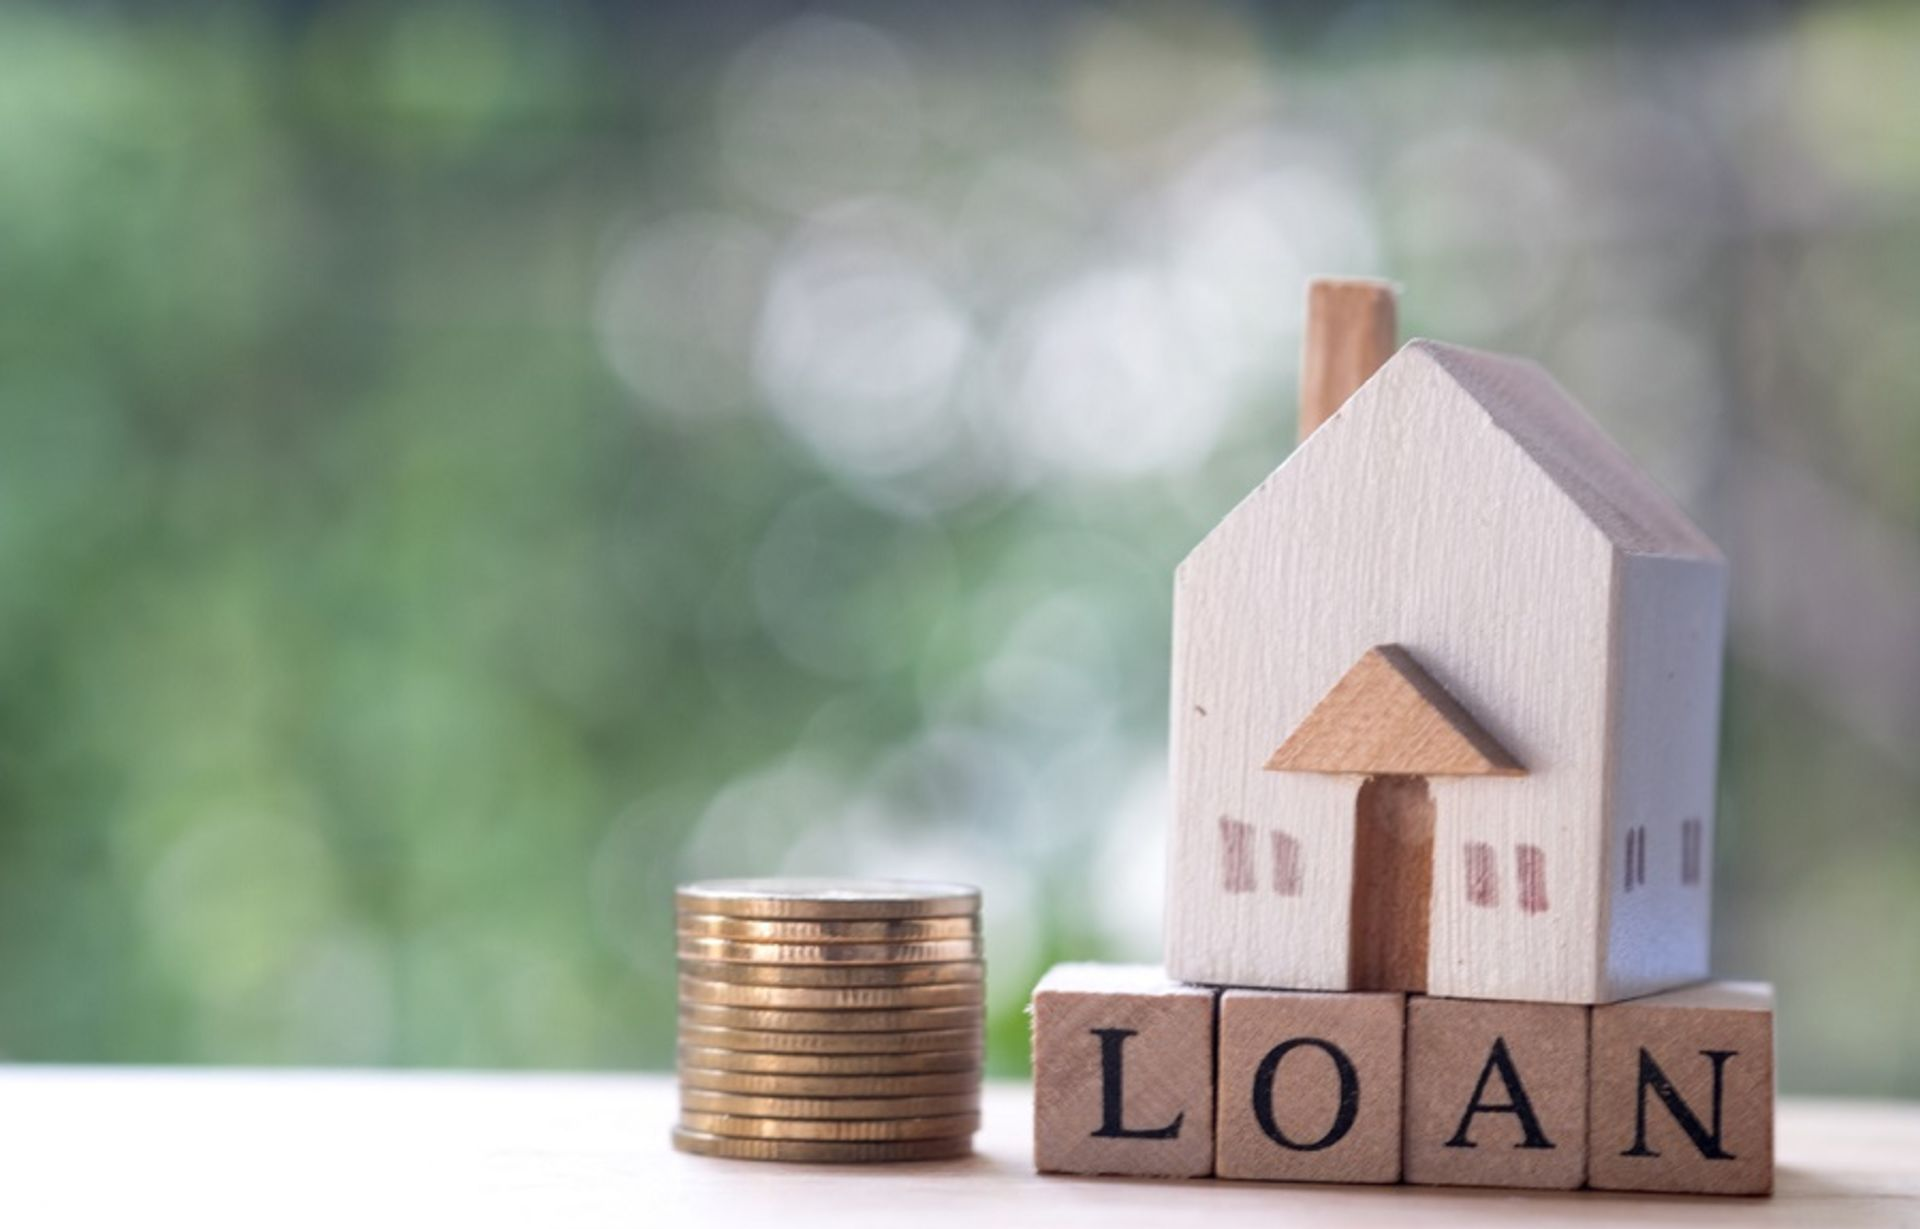 No Time Like the Present to Purchase Investment Property